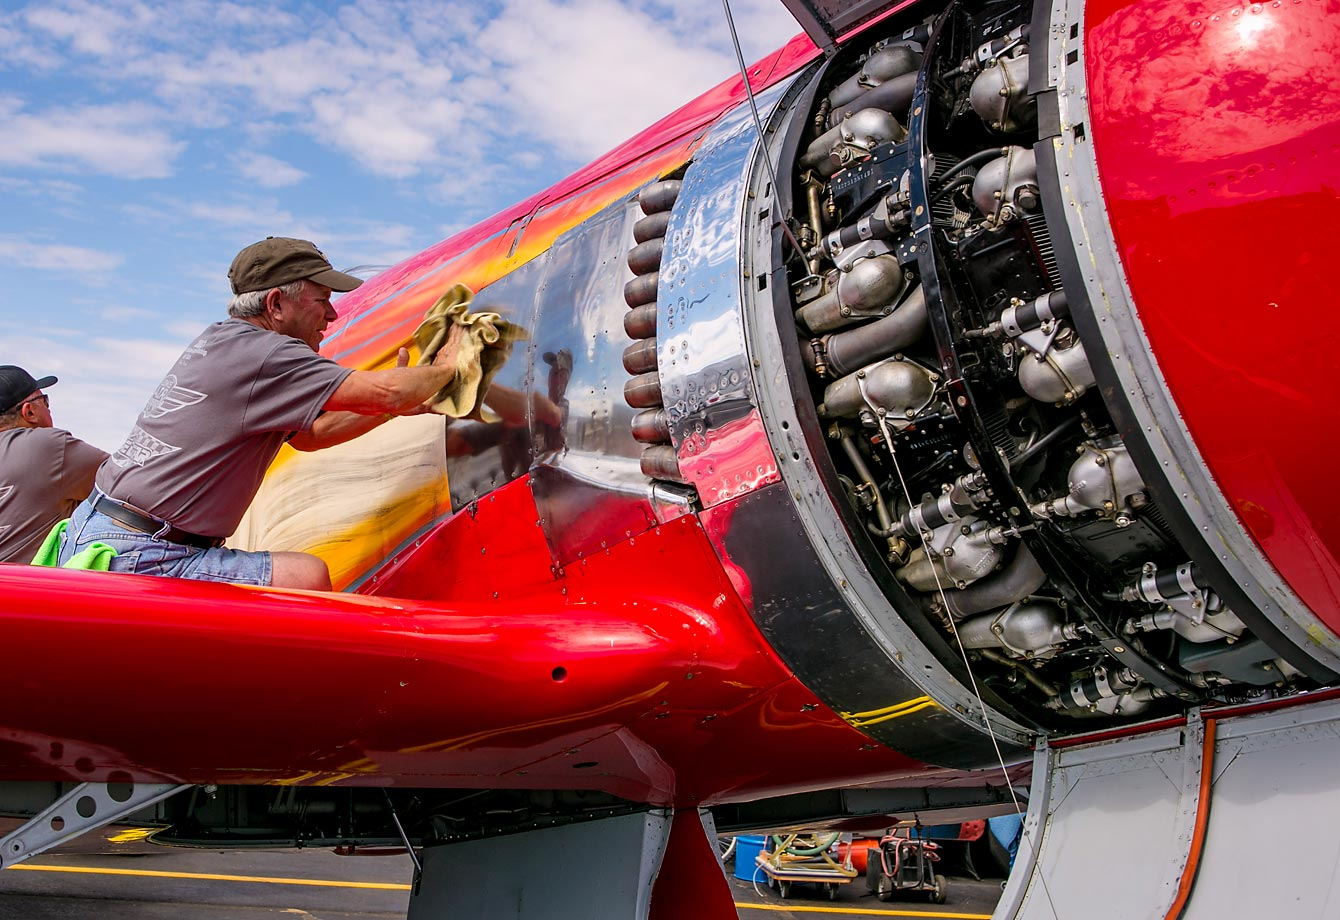 A man cleans his airplane in preparation for the 2013 races.